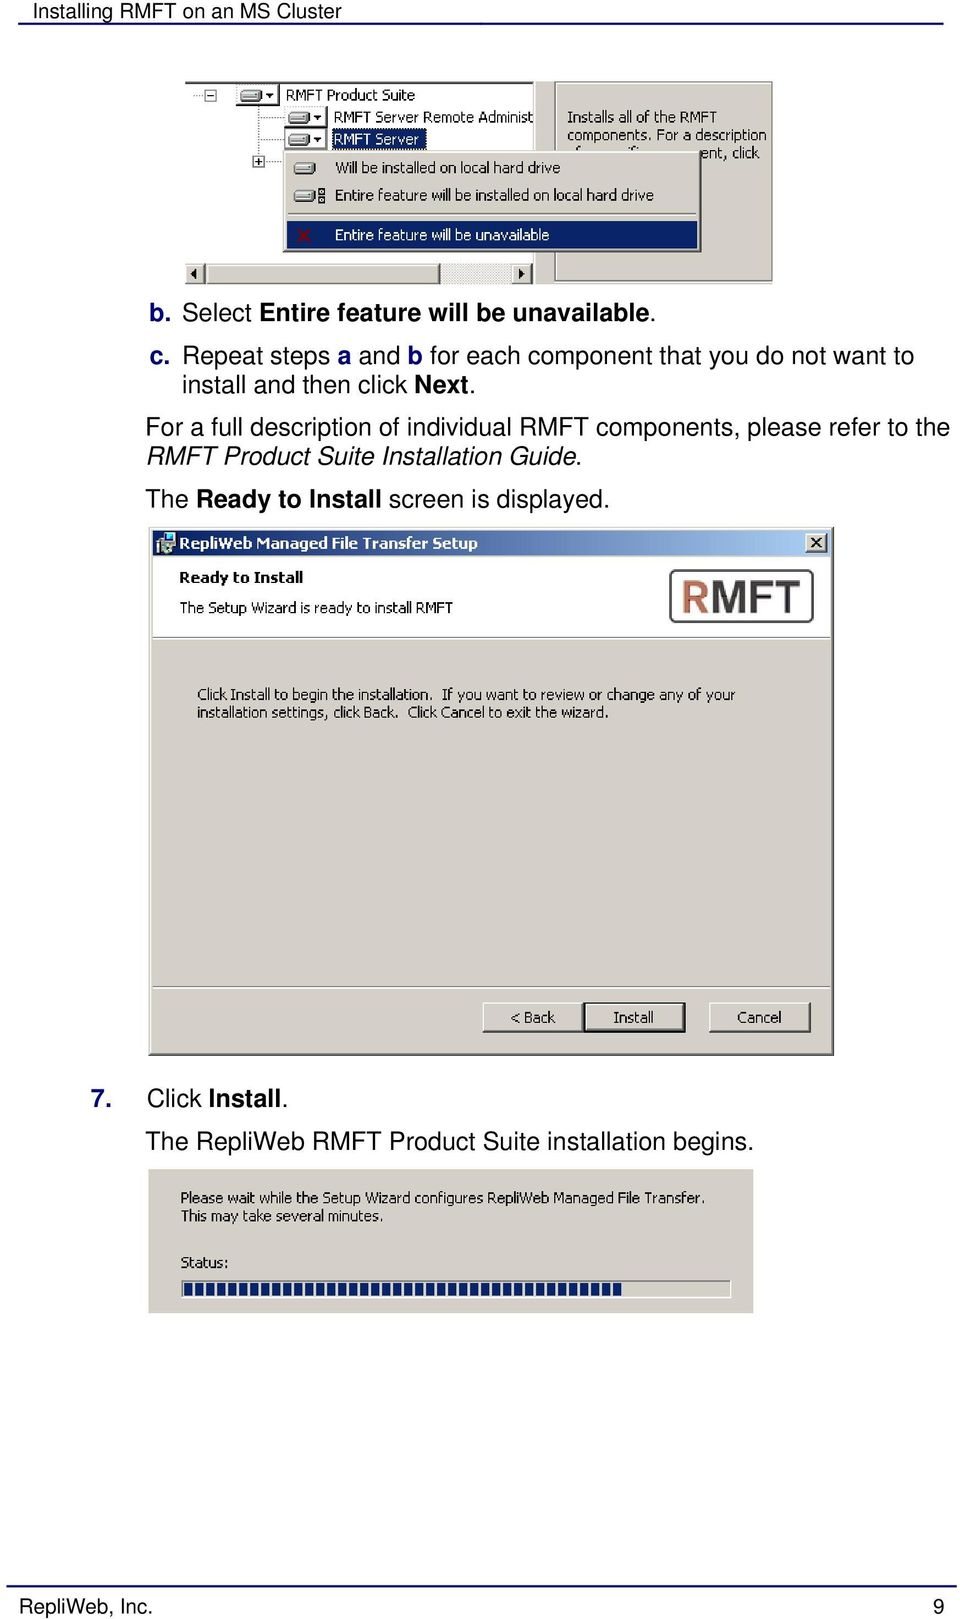 For a full description of individual RMFT components, please refer to the RMFT Product Suite